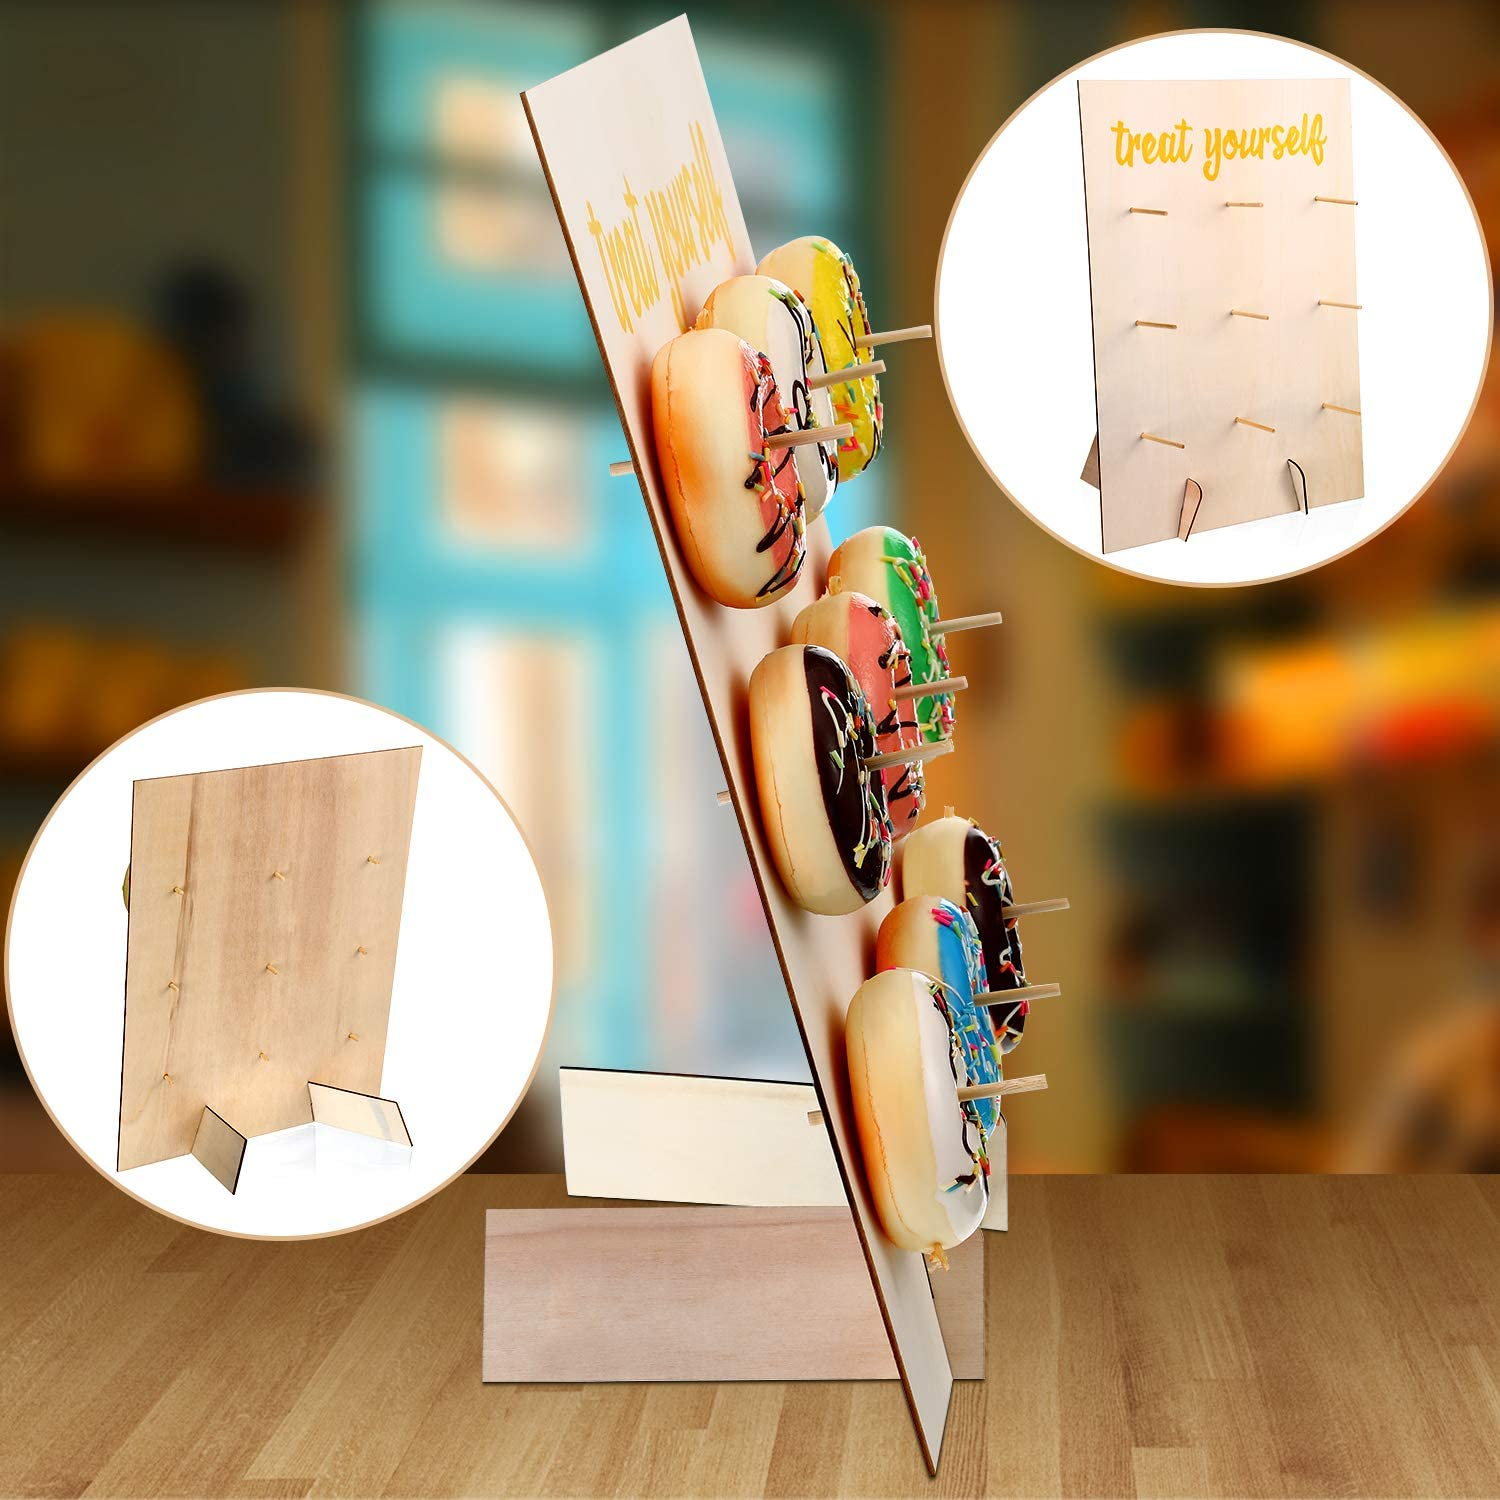 2 Pieces Reusable Donut Display Wall Doughnut Wall Display Stand Holder for Birthday Cake Wedding Party Donut Decoration